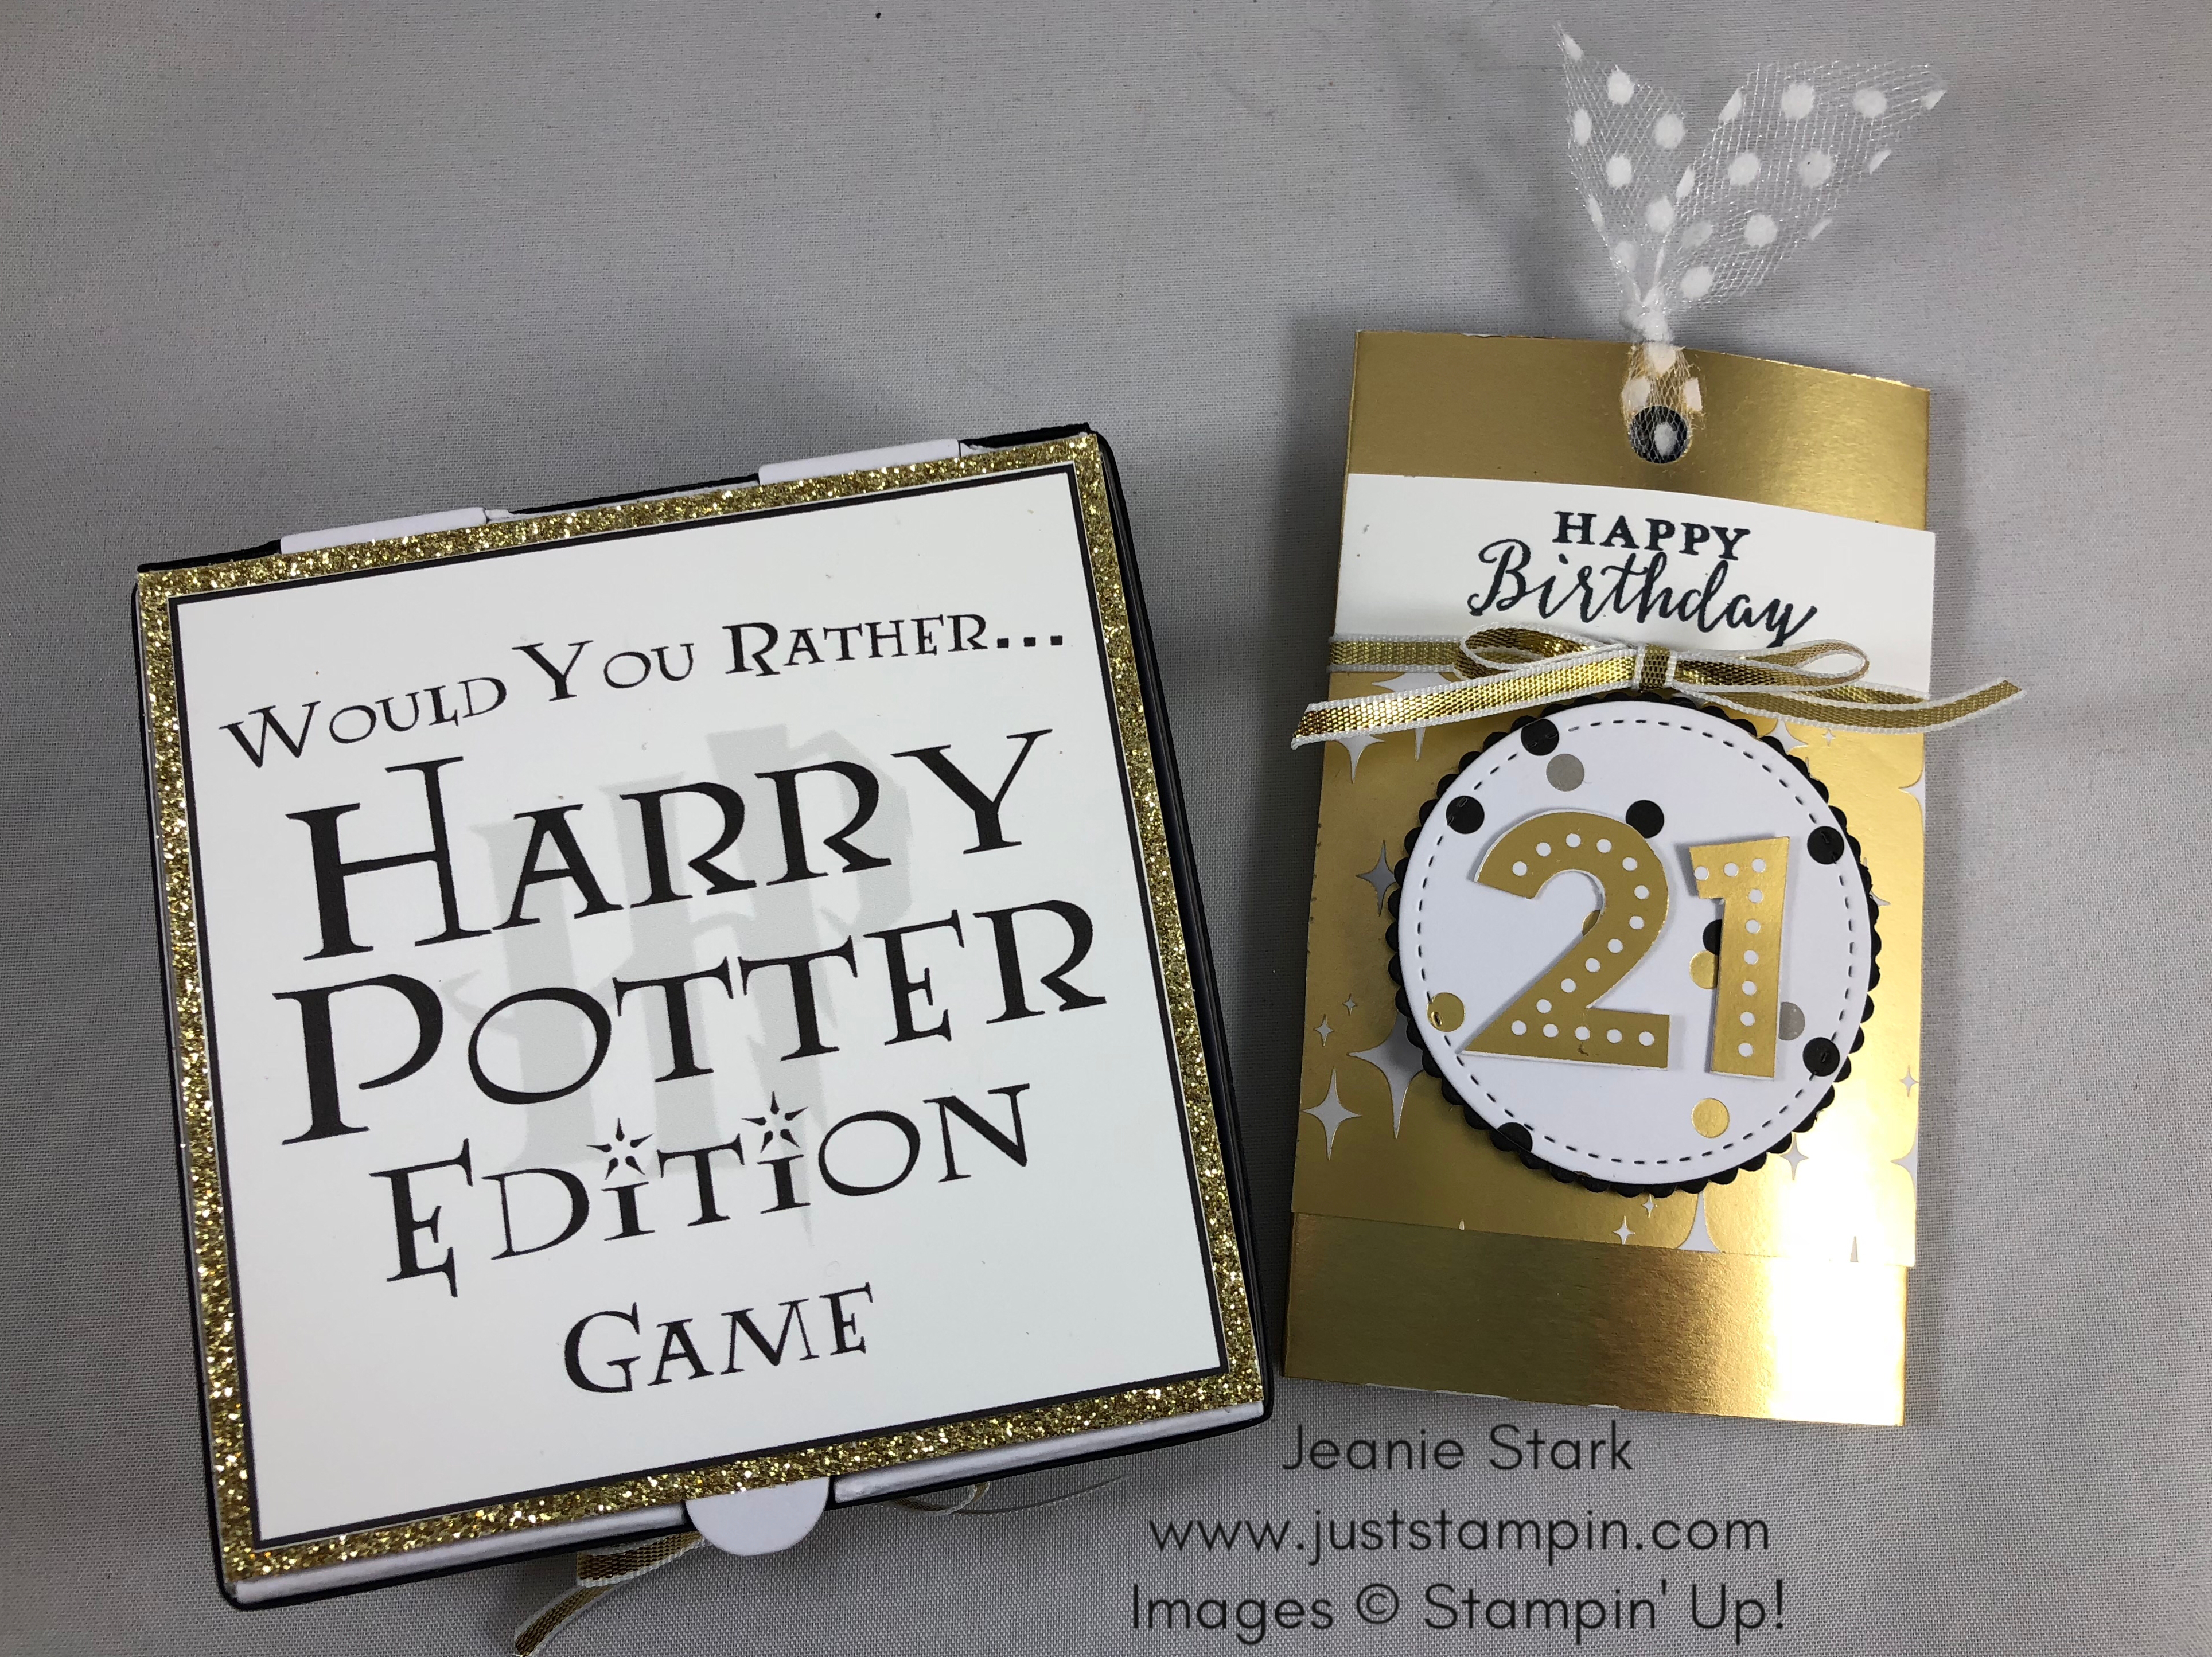 Stampin Up Broadway Bound 21st birthday gift card holder and mini pizza box game idea - Jeanie Stark StampinUp